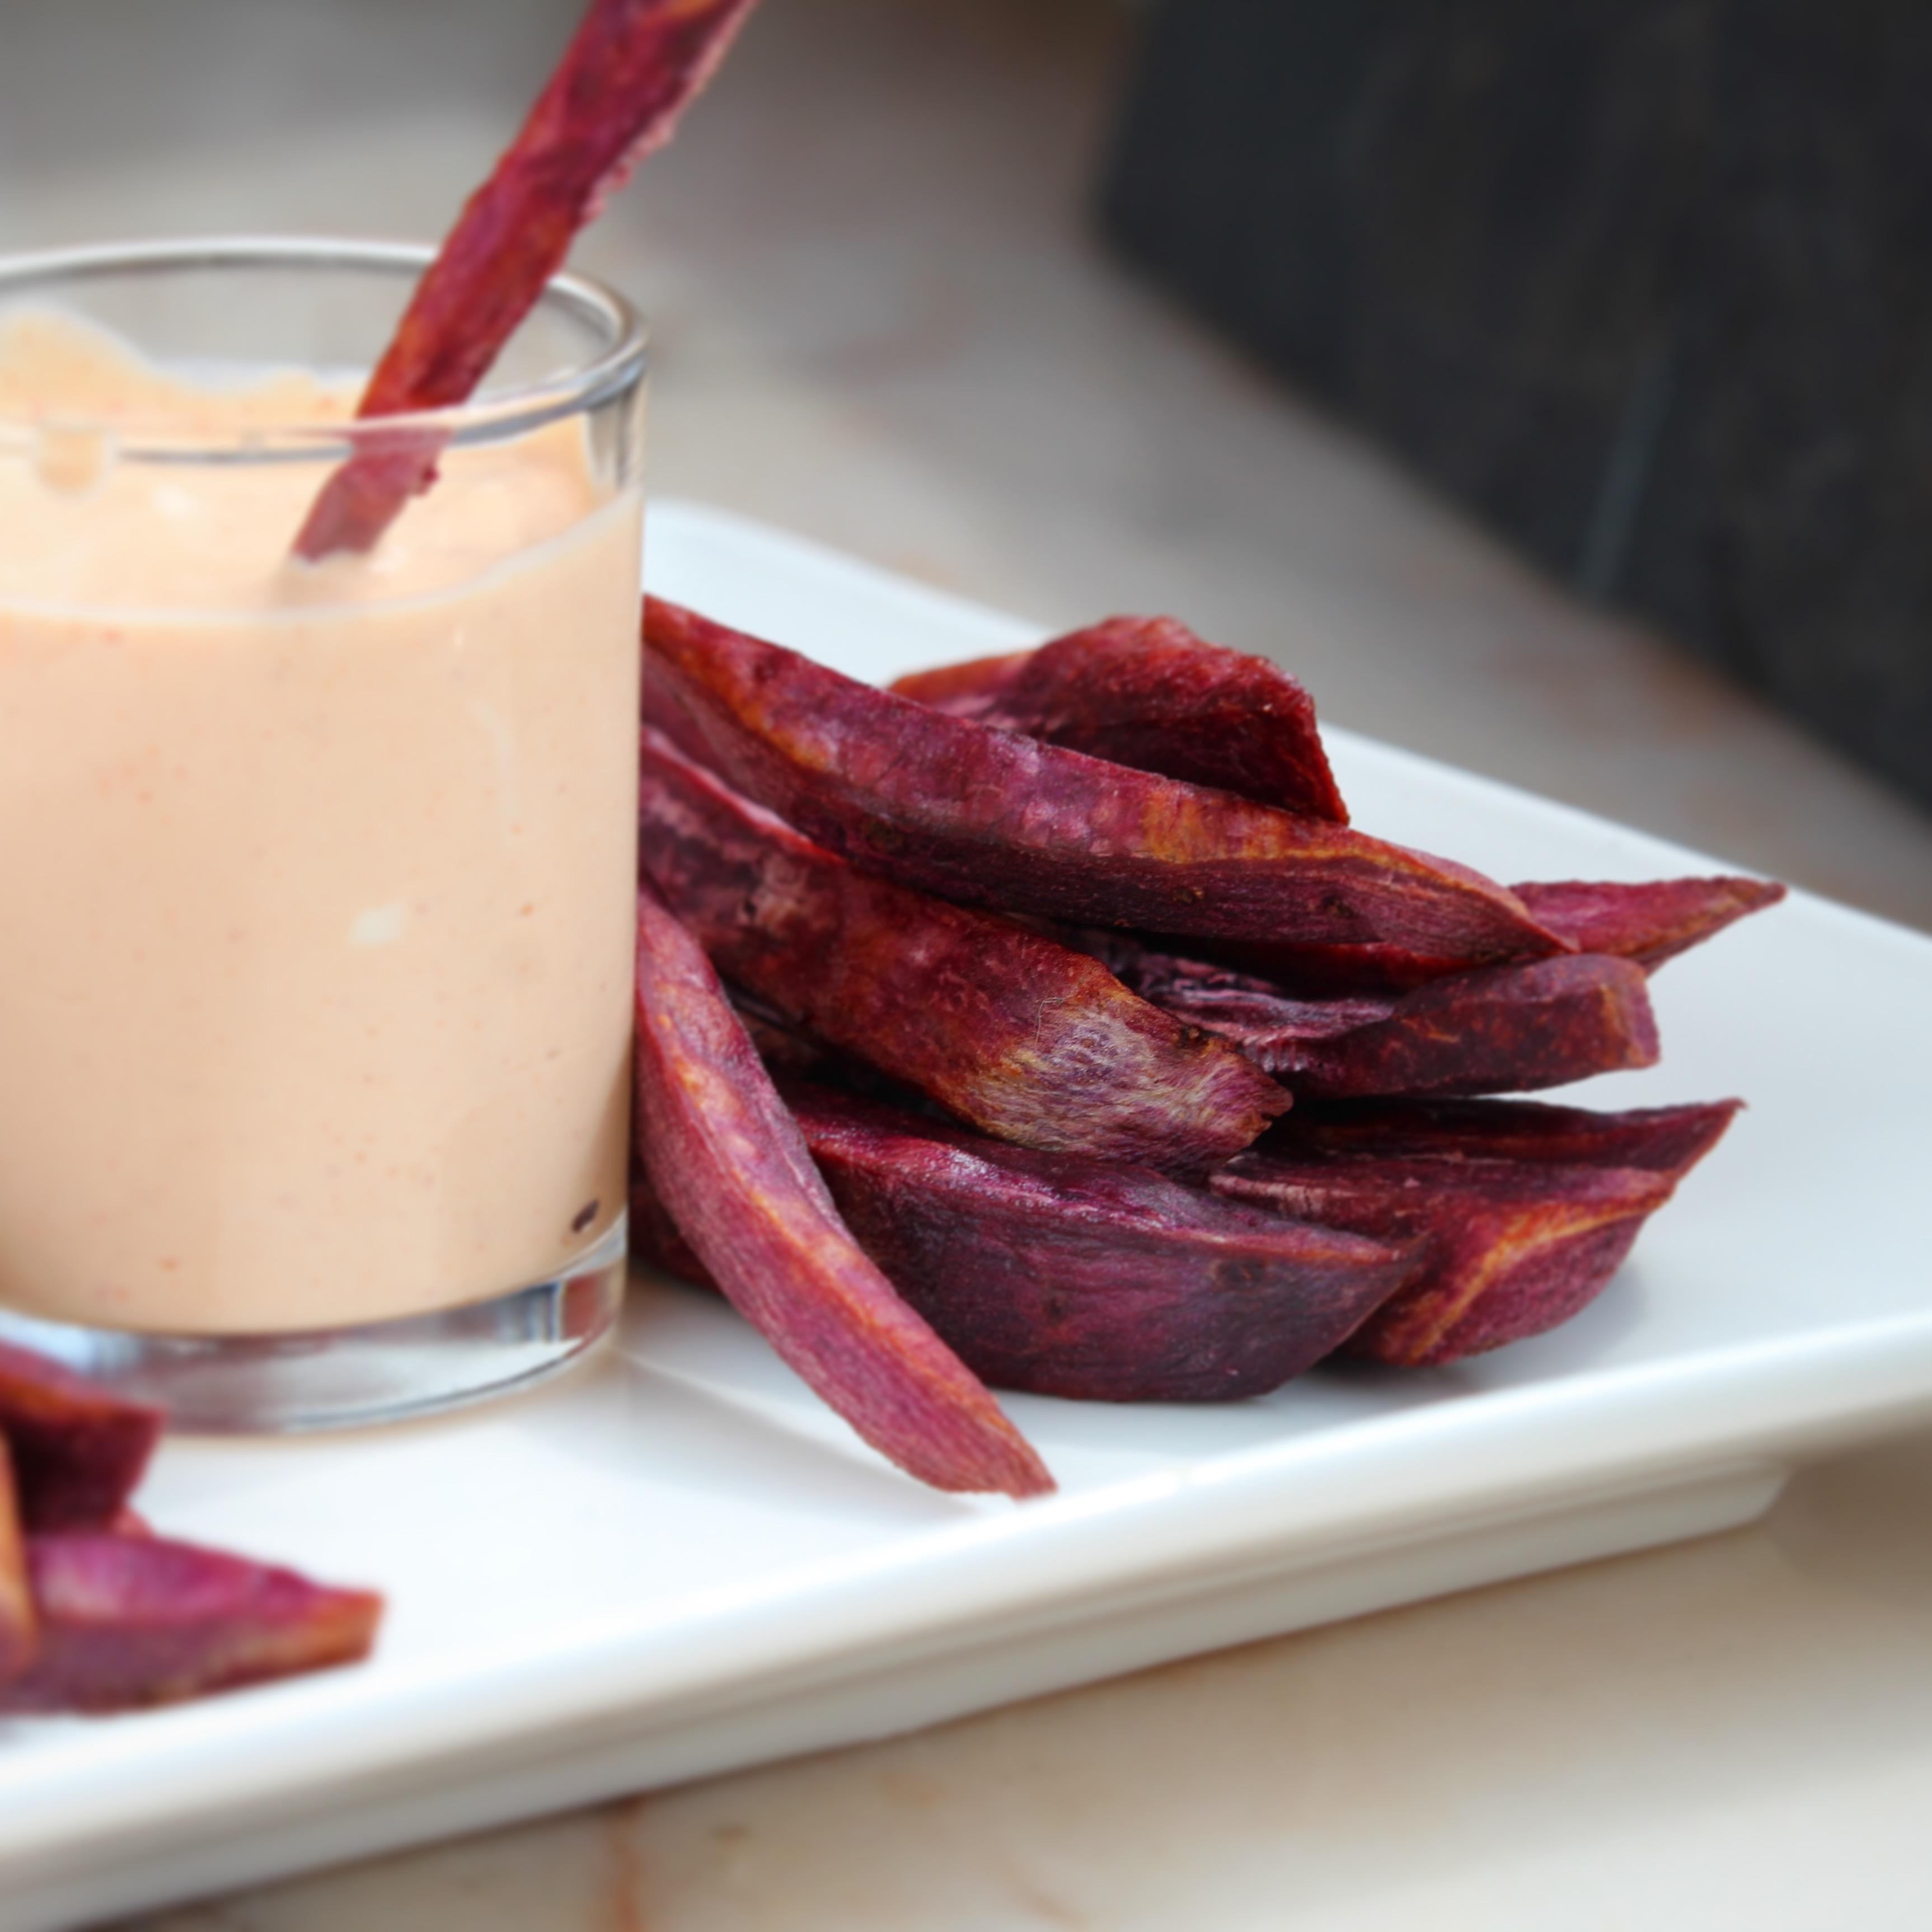 Air-Fried Purple Yam Fries with Sour Cream Sriracha Sauce